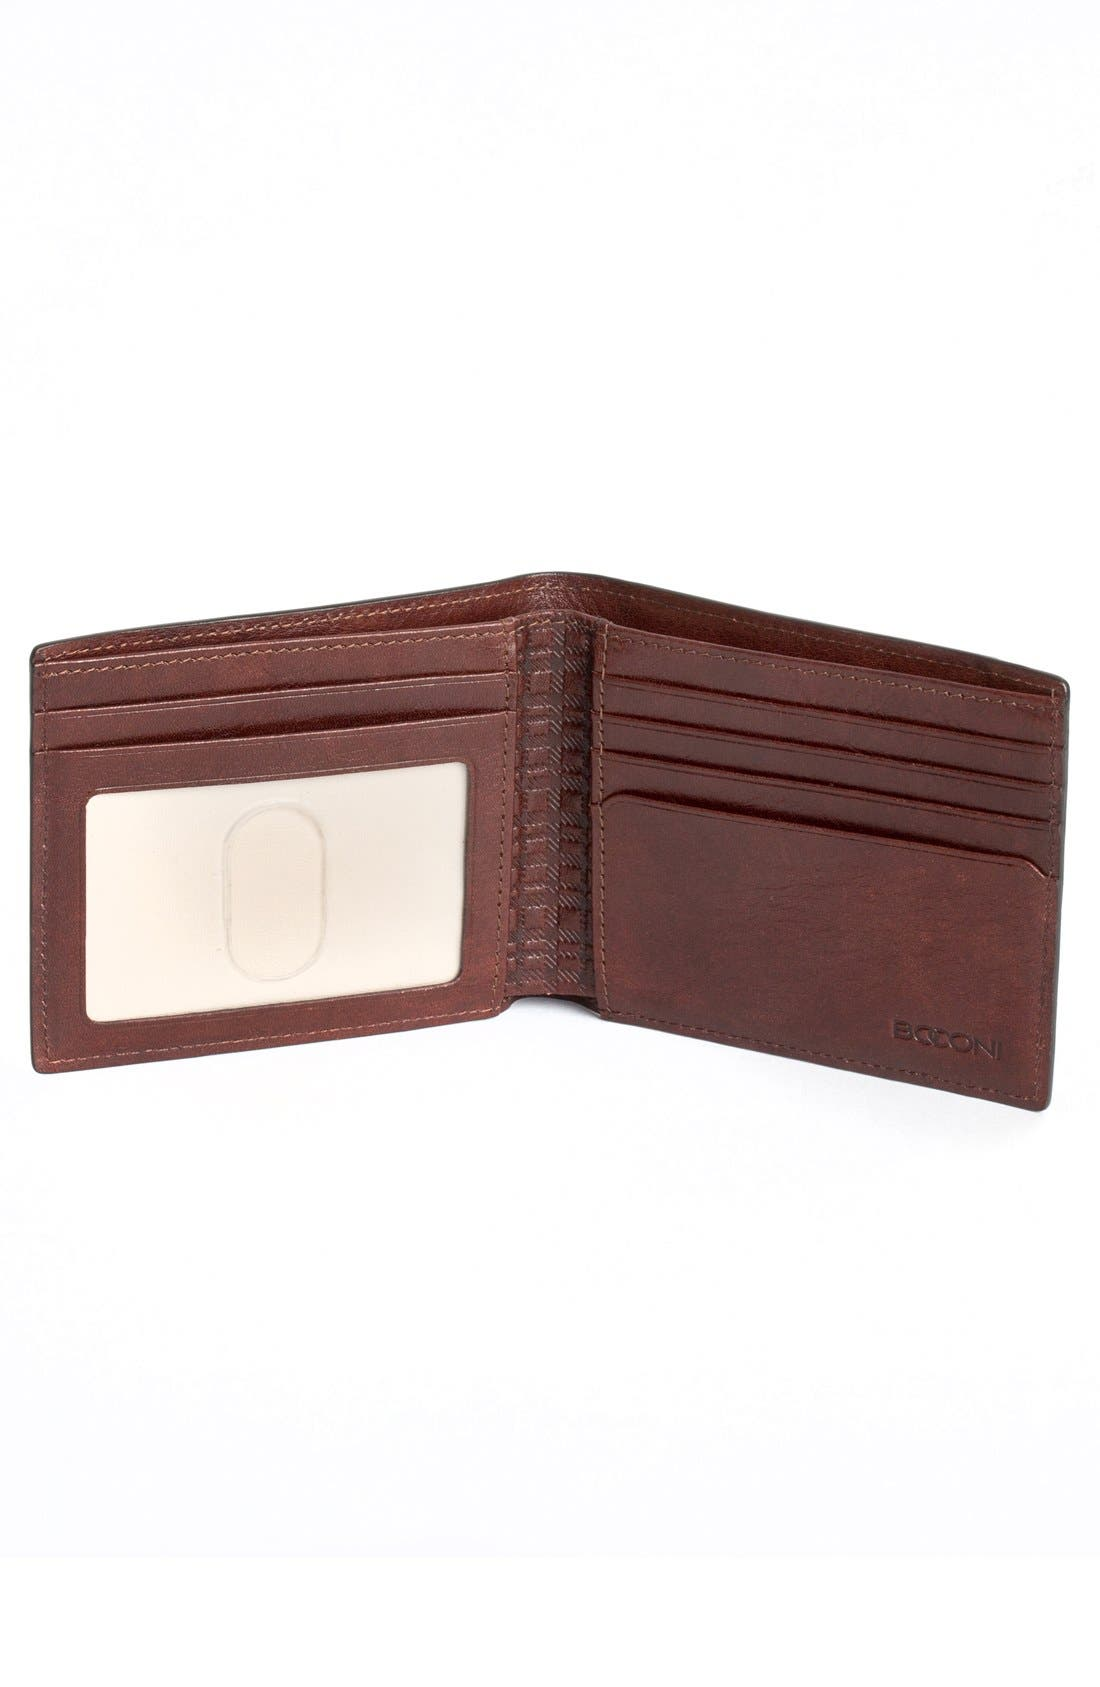 'Becker' Leather Wallet,                             Alternate thumbnail 4, color,                             215